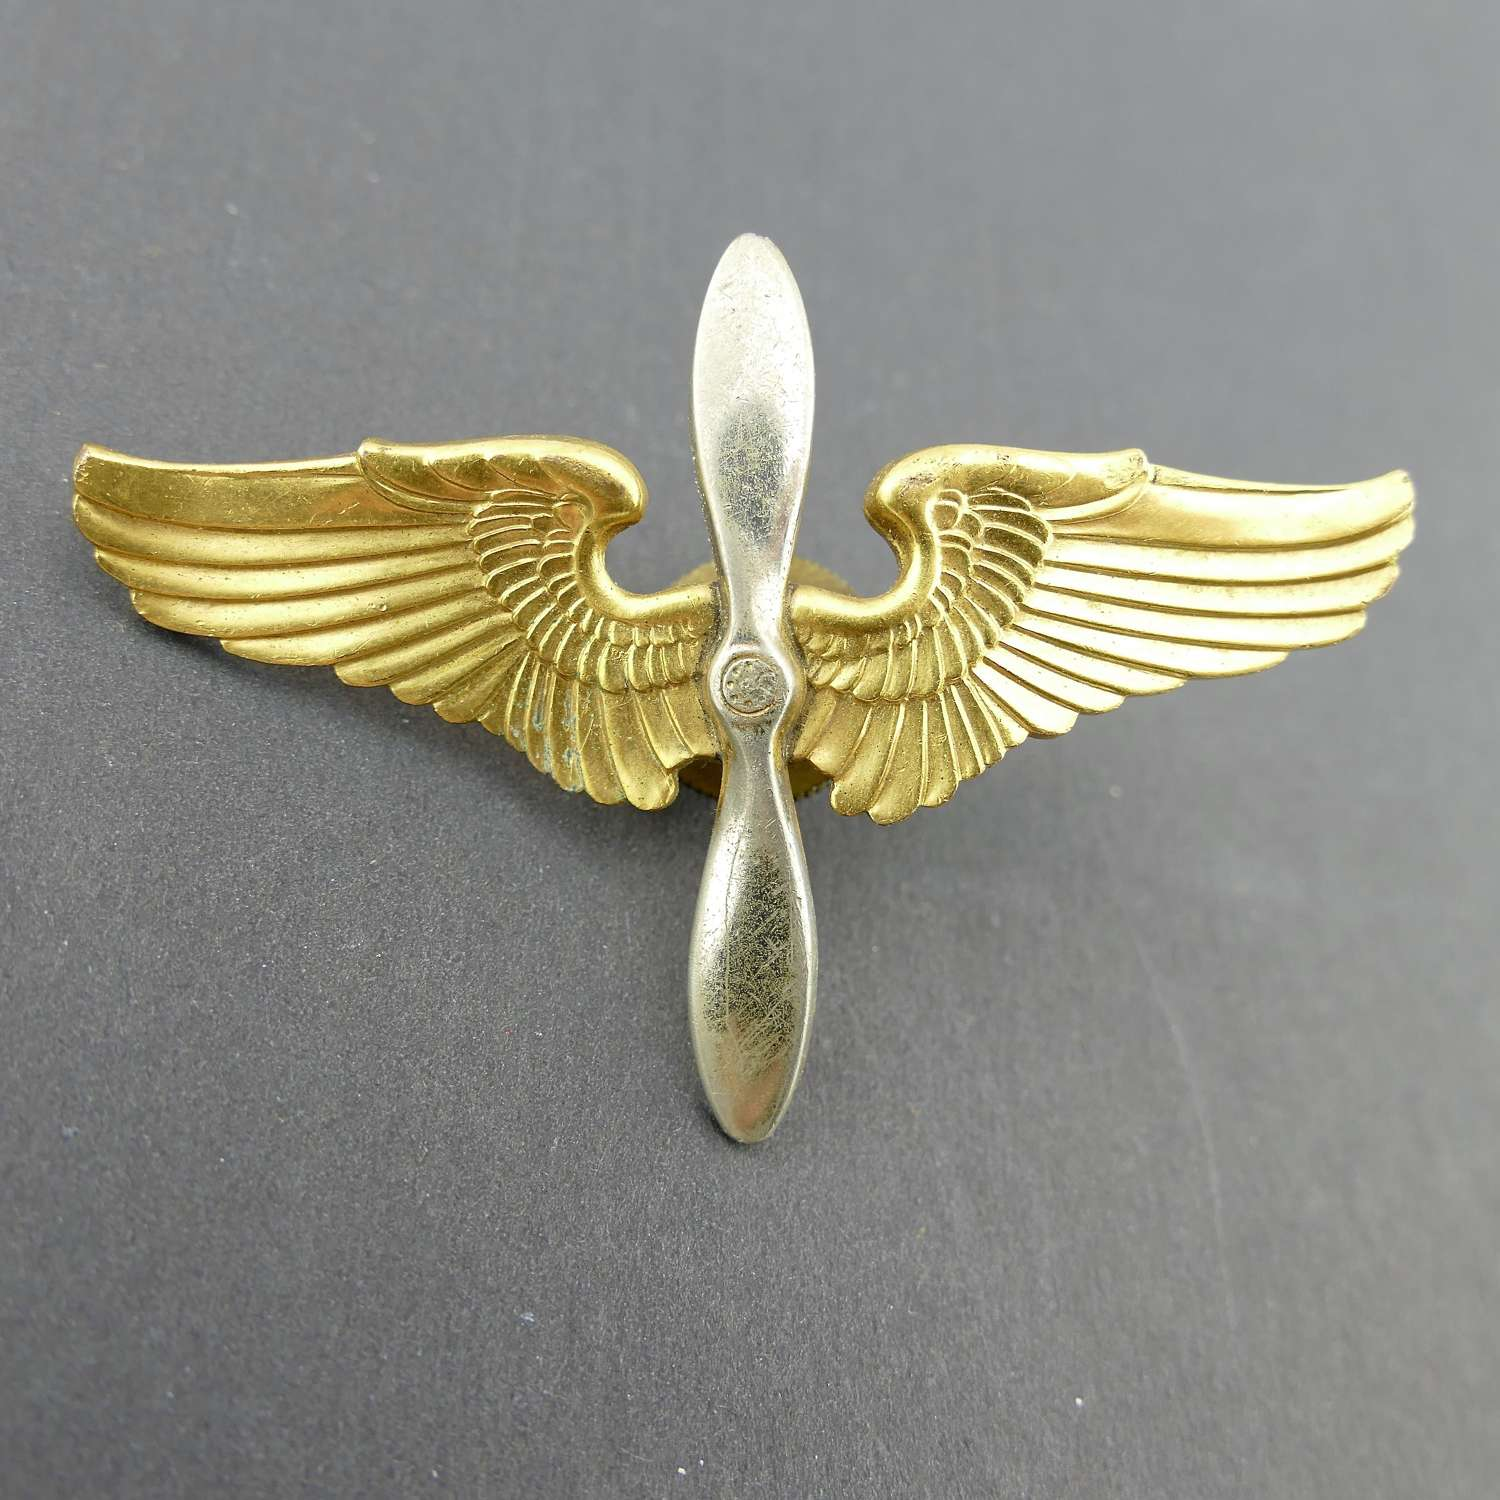 USAAF cadet cap badge